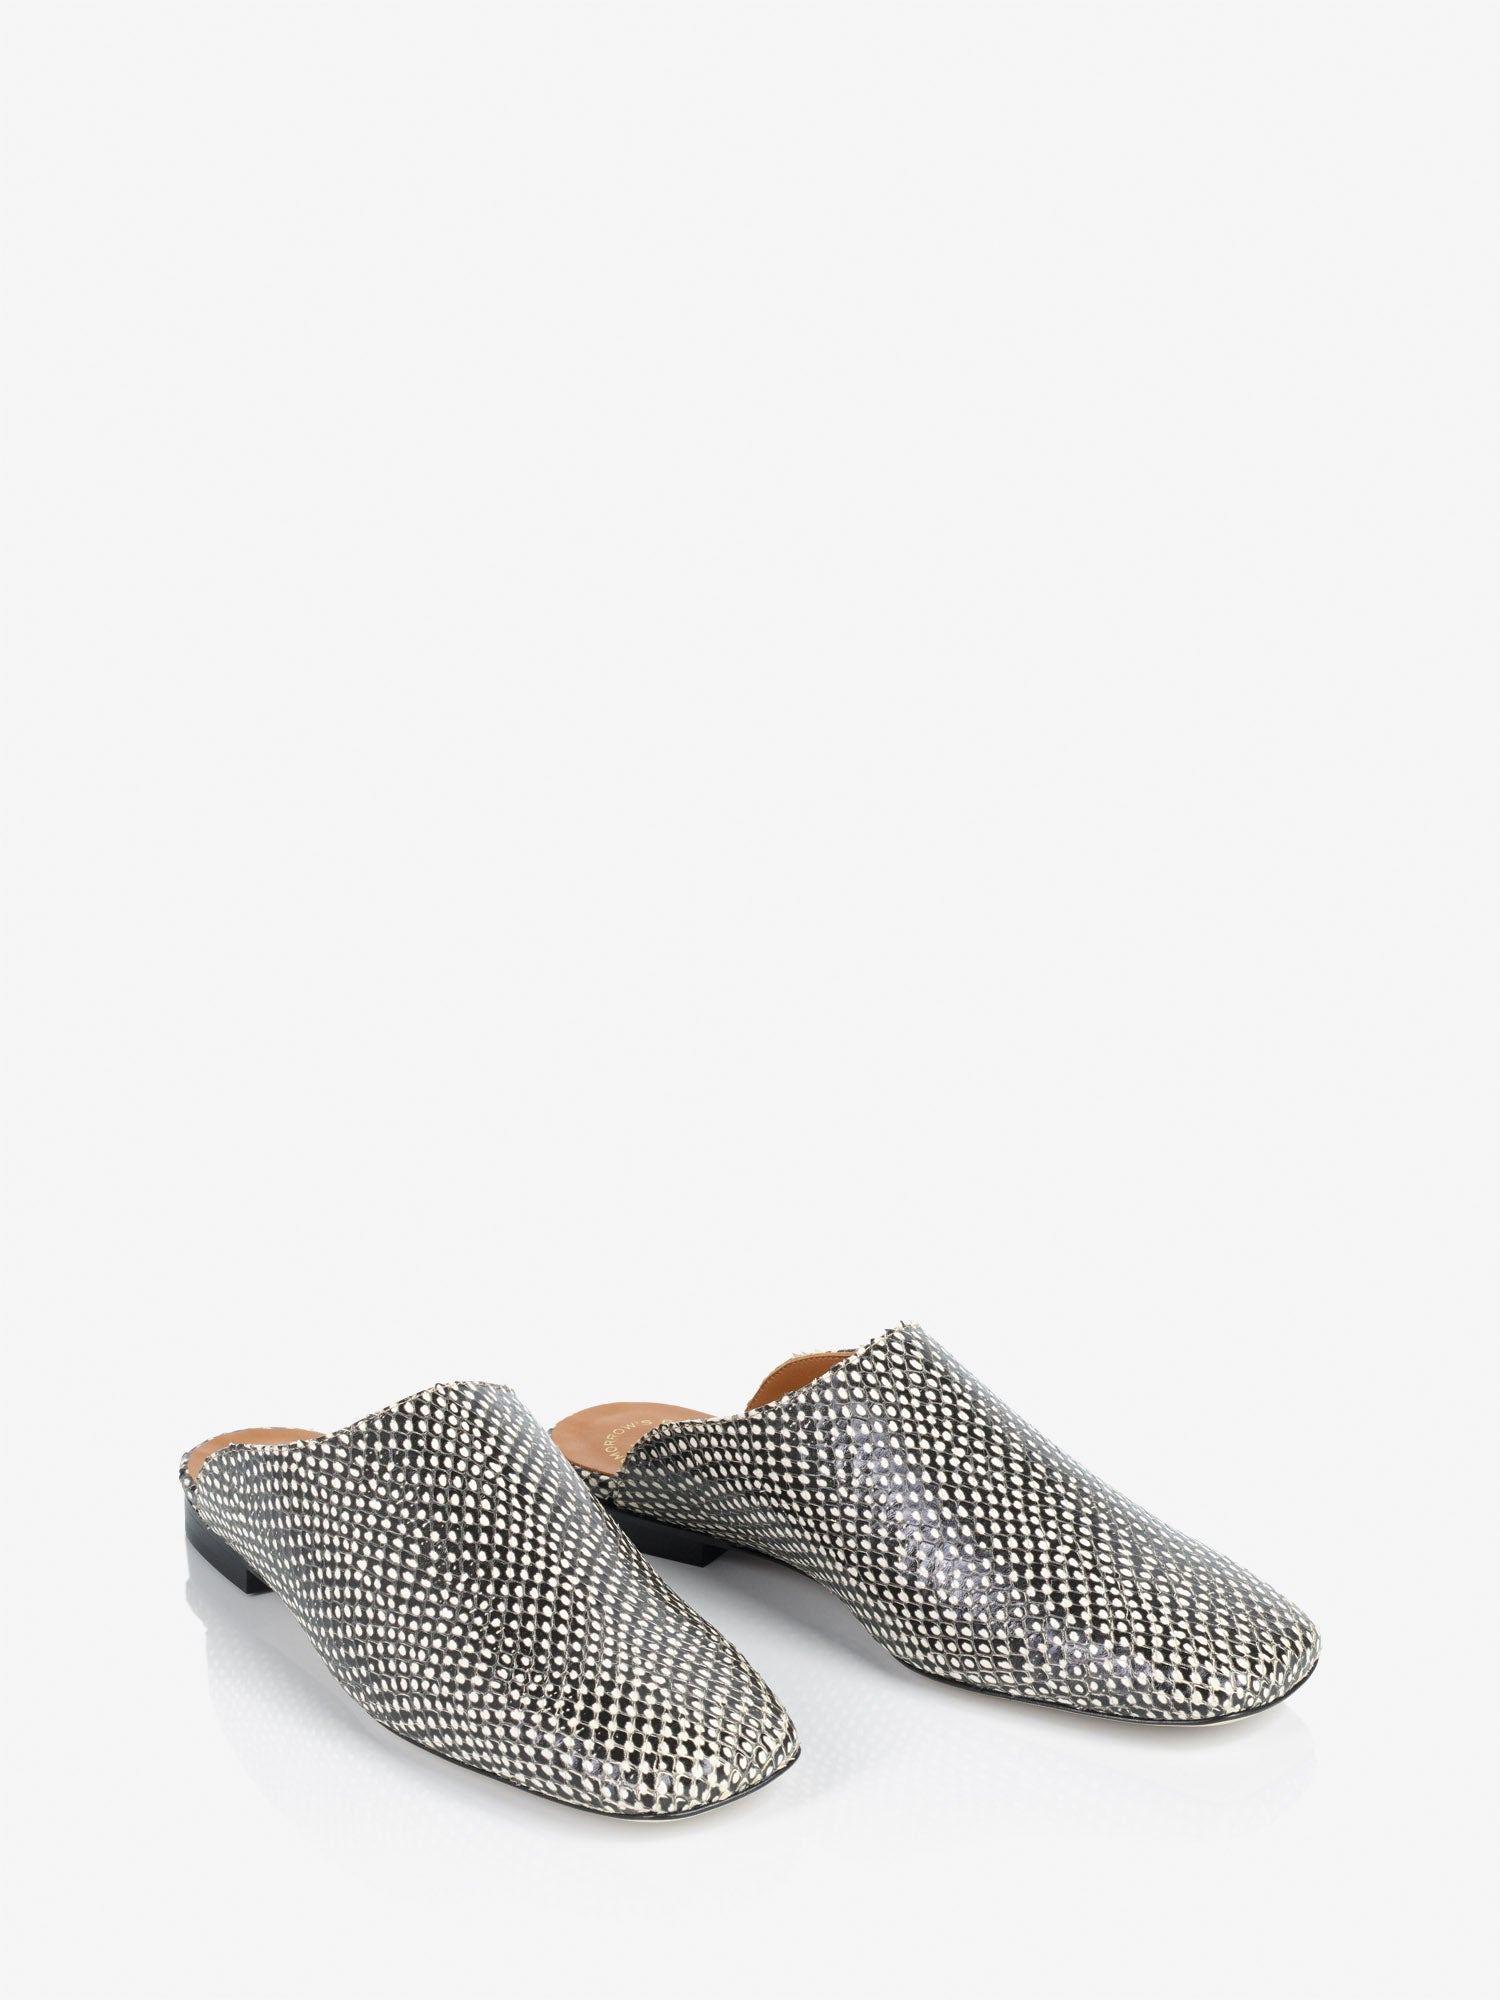 ATP Atelier Cade Black and White Dot Printed Snake Shoes